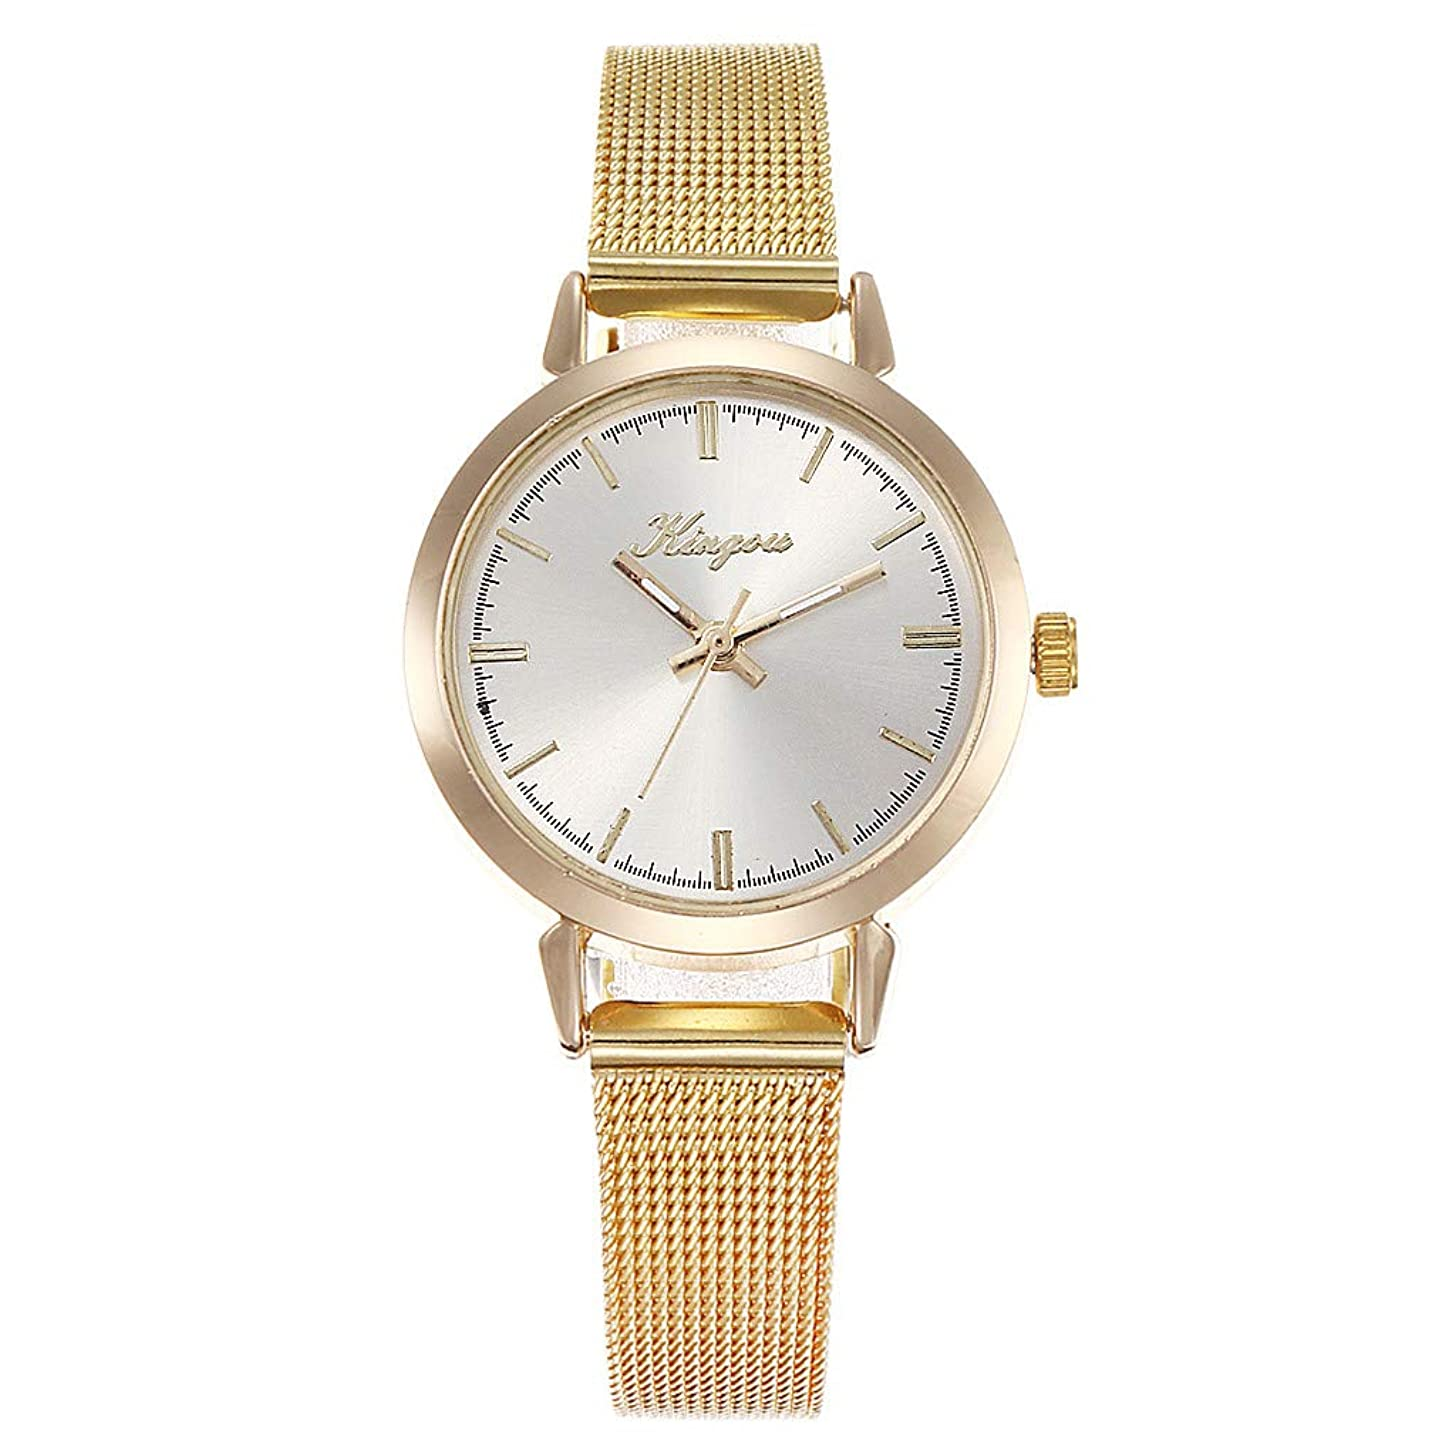 LUCAMORE Women Watch Fashion Quartz Mesh Wristwatch Gifts Luxury Stainless Steel Band Analog Business Watches